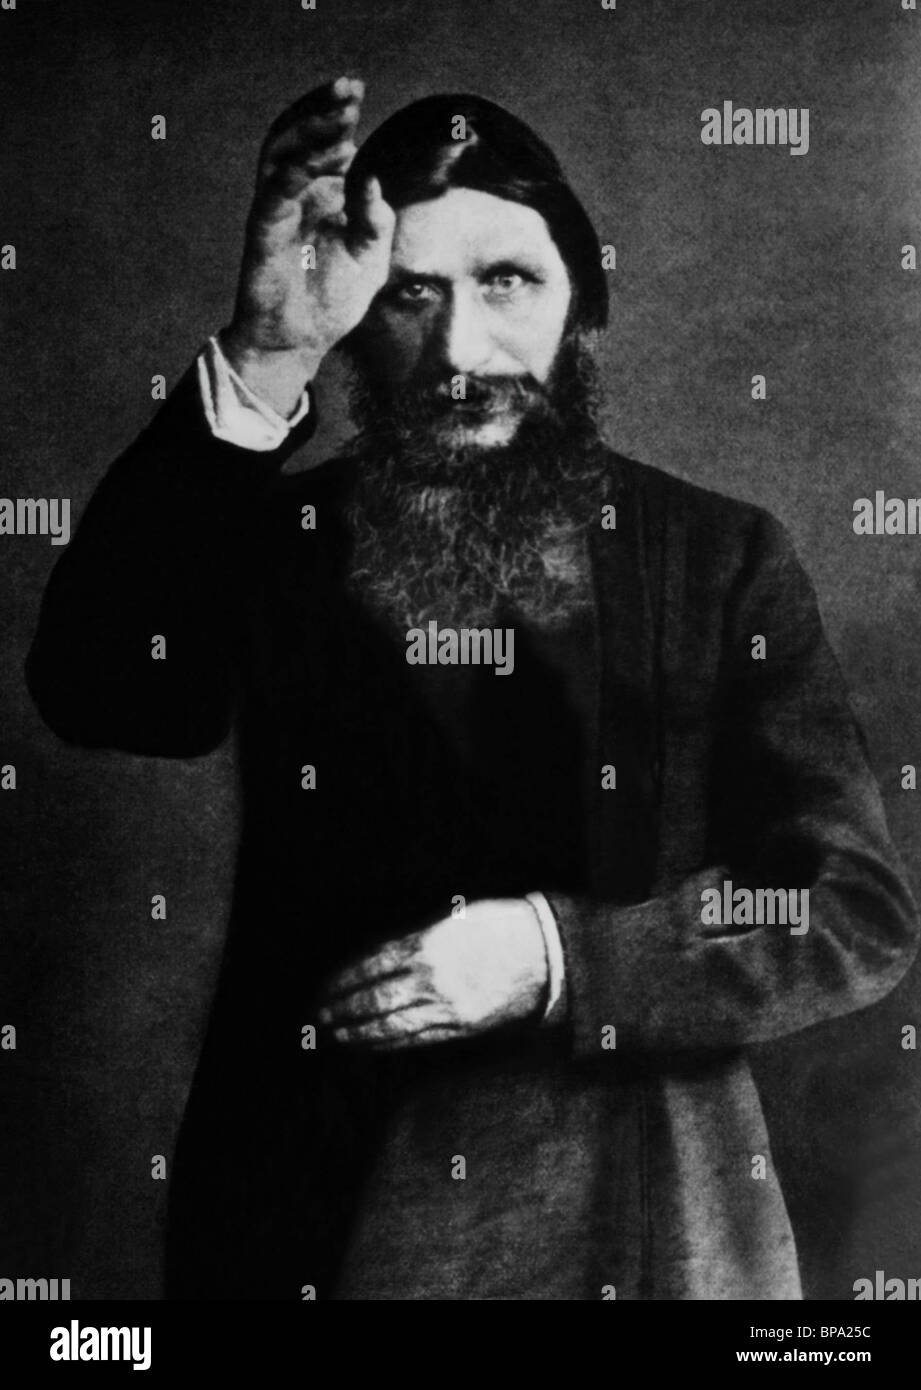 RASPUTIN FROM CZAR TO STALIN (1962) - Stock Image